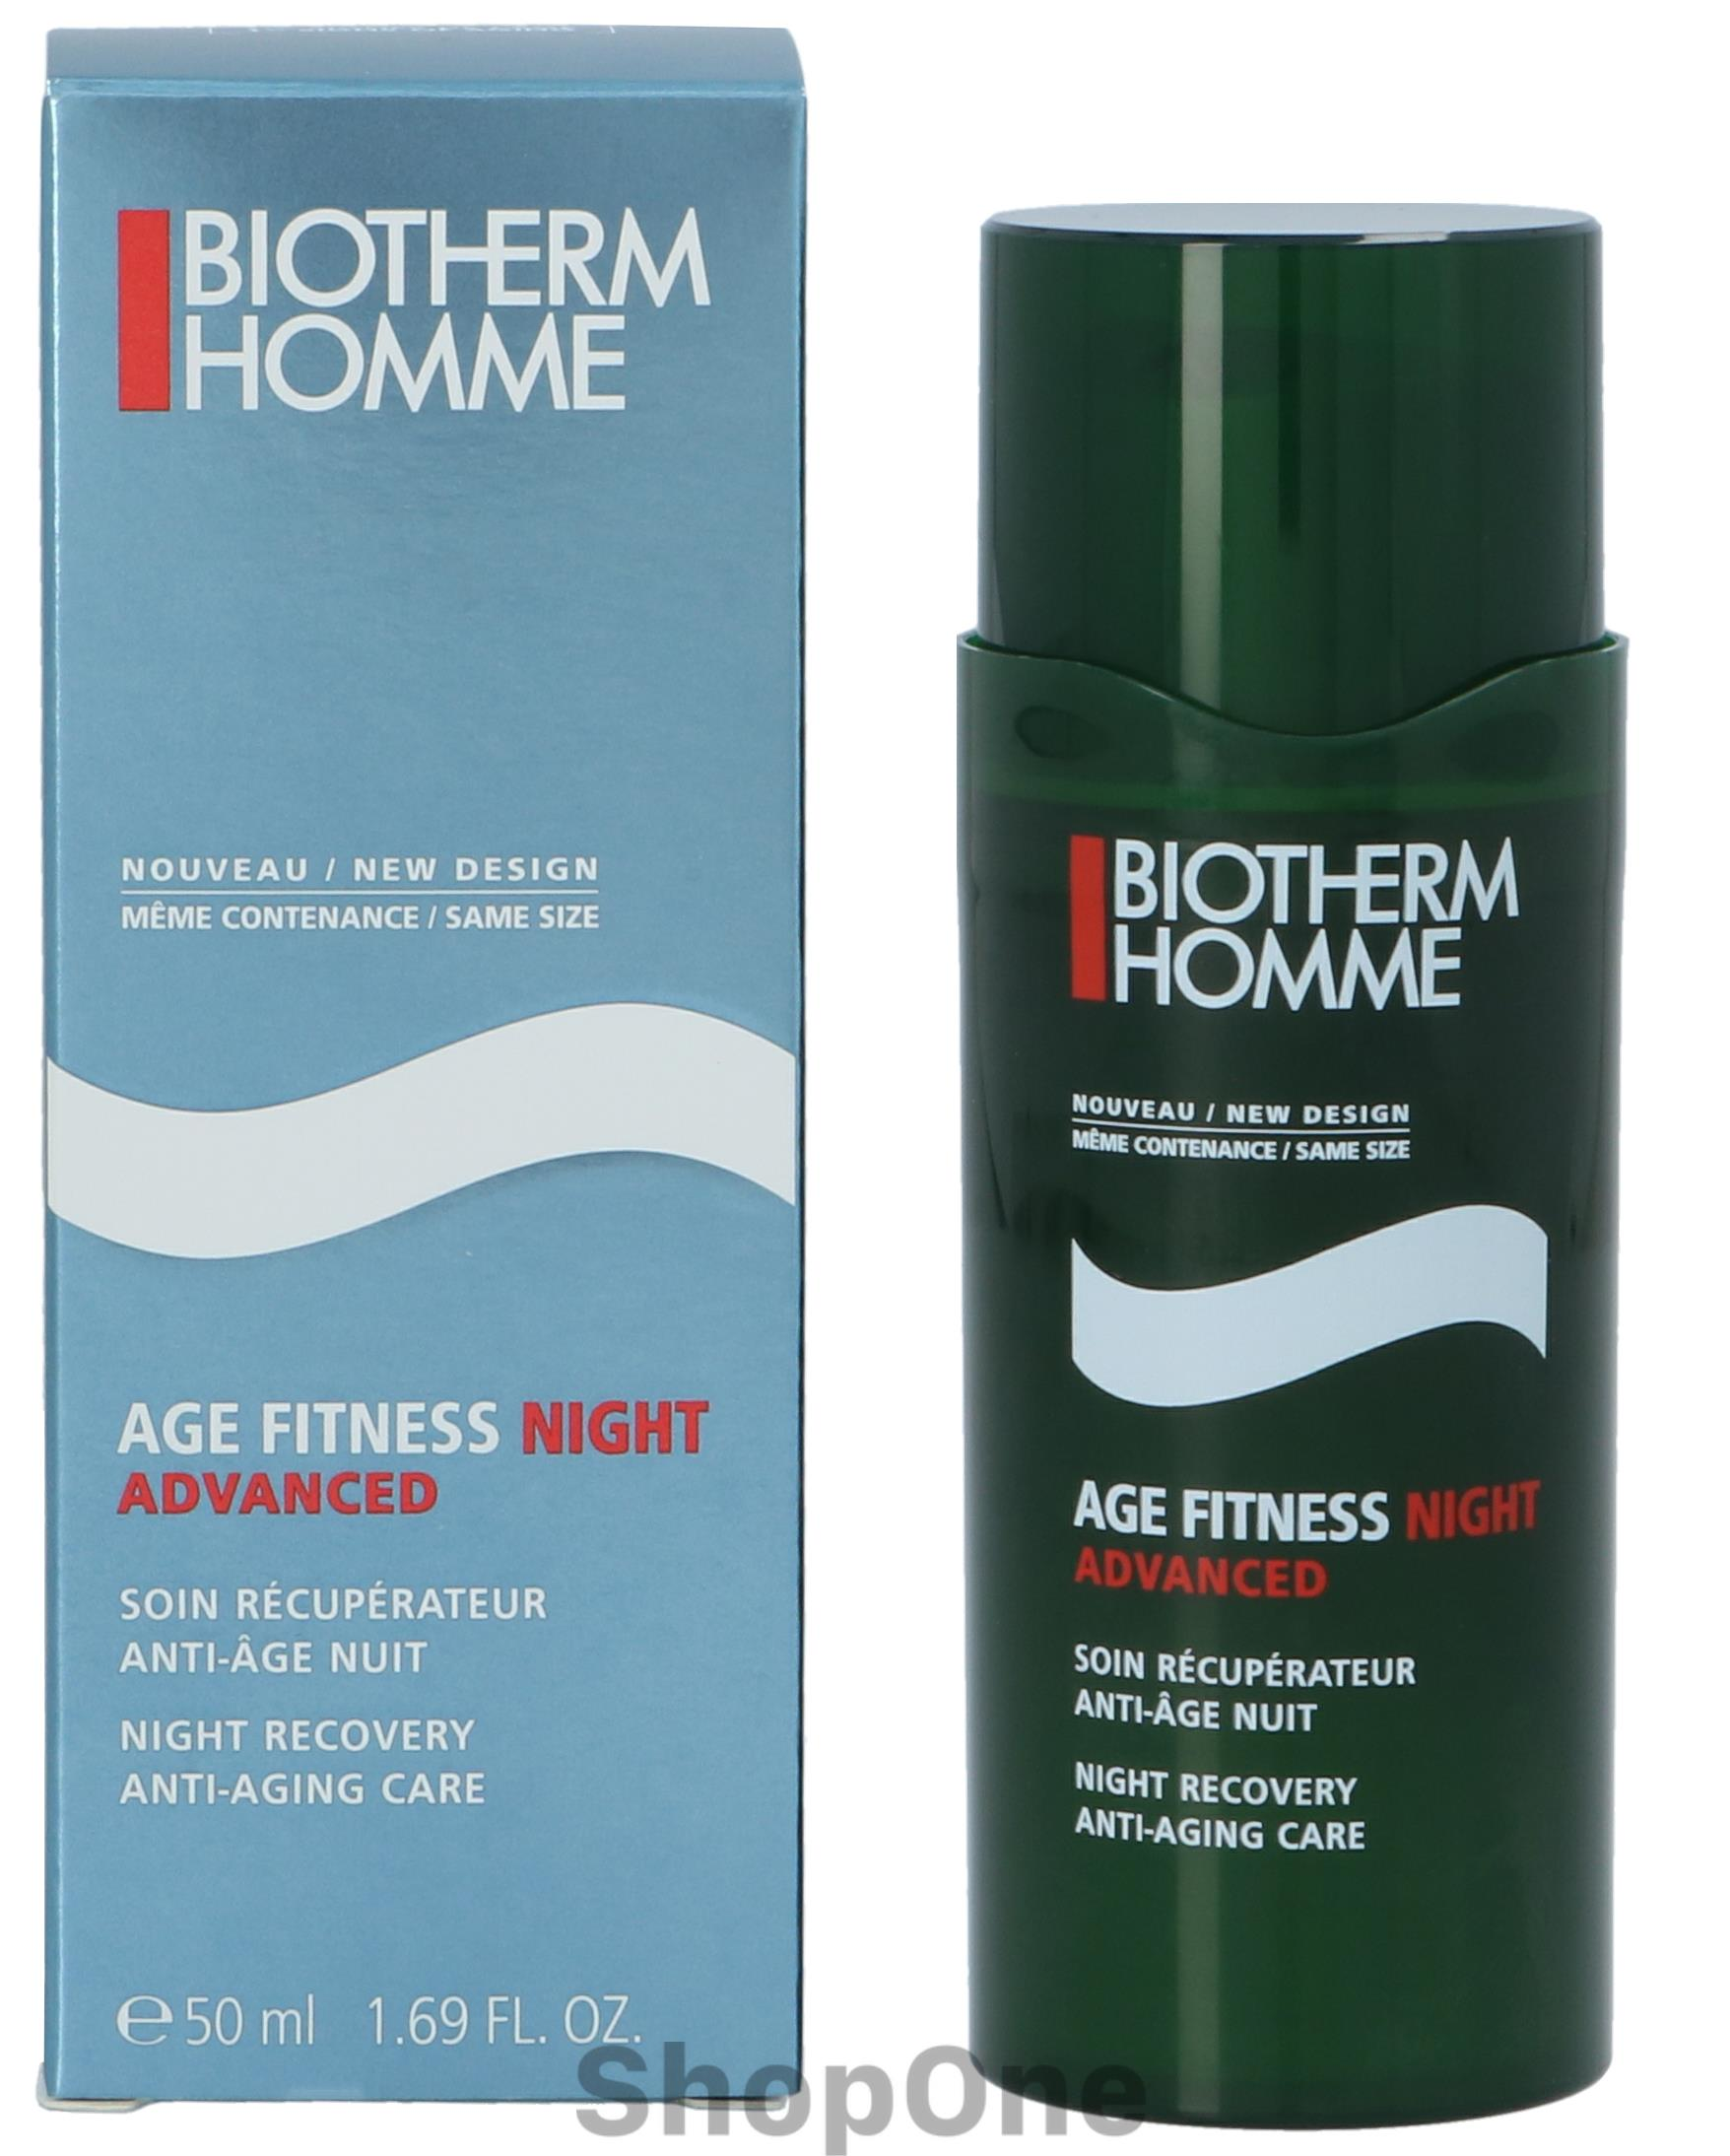 Homme Age Fitness Night Advanced 50 ml fra Biotherm - Gezicht Biotherm Homme Age Fitness Night Advanced 50 ml. Fra Biotherm.